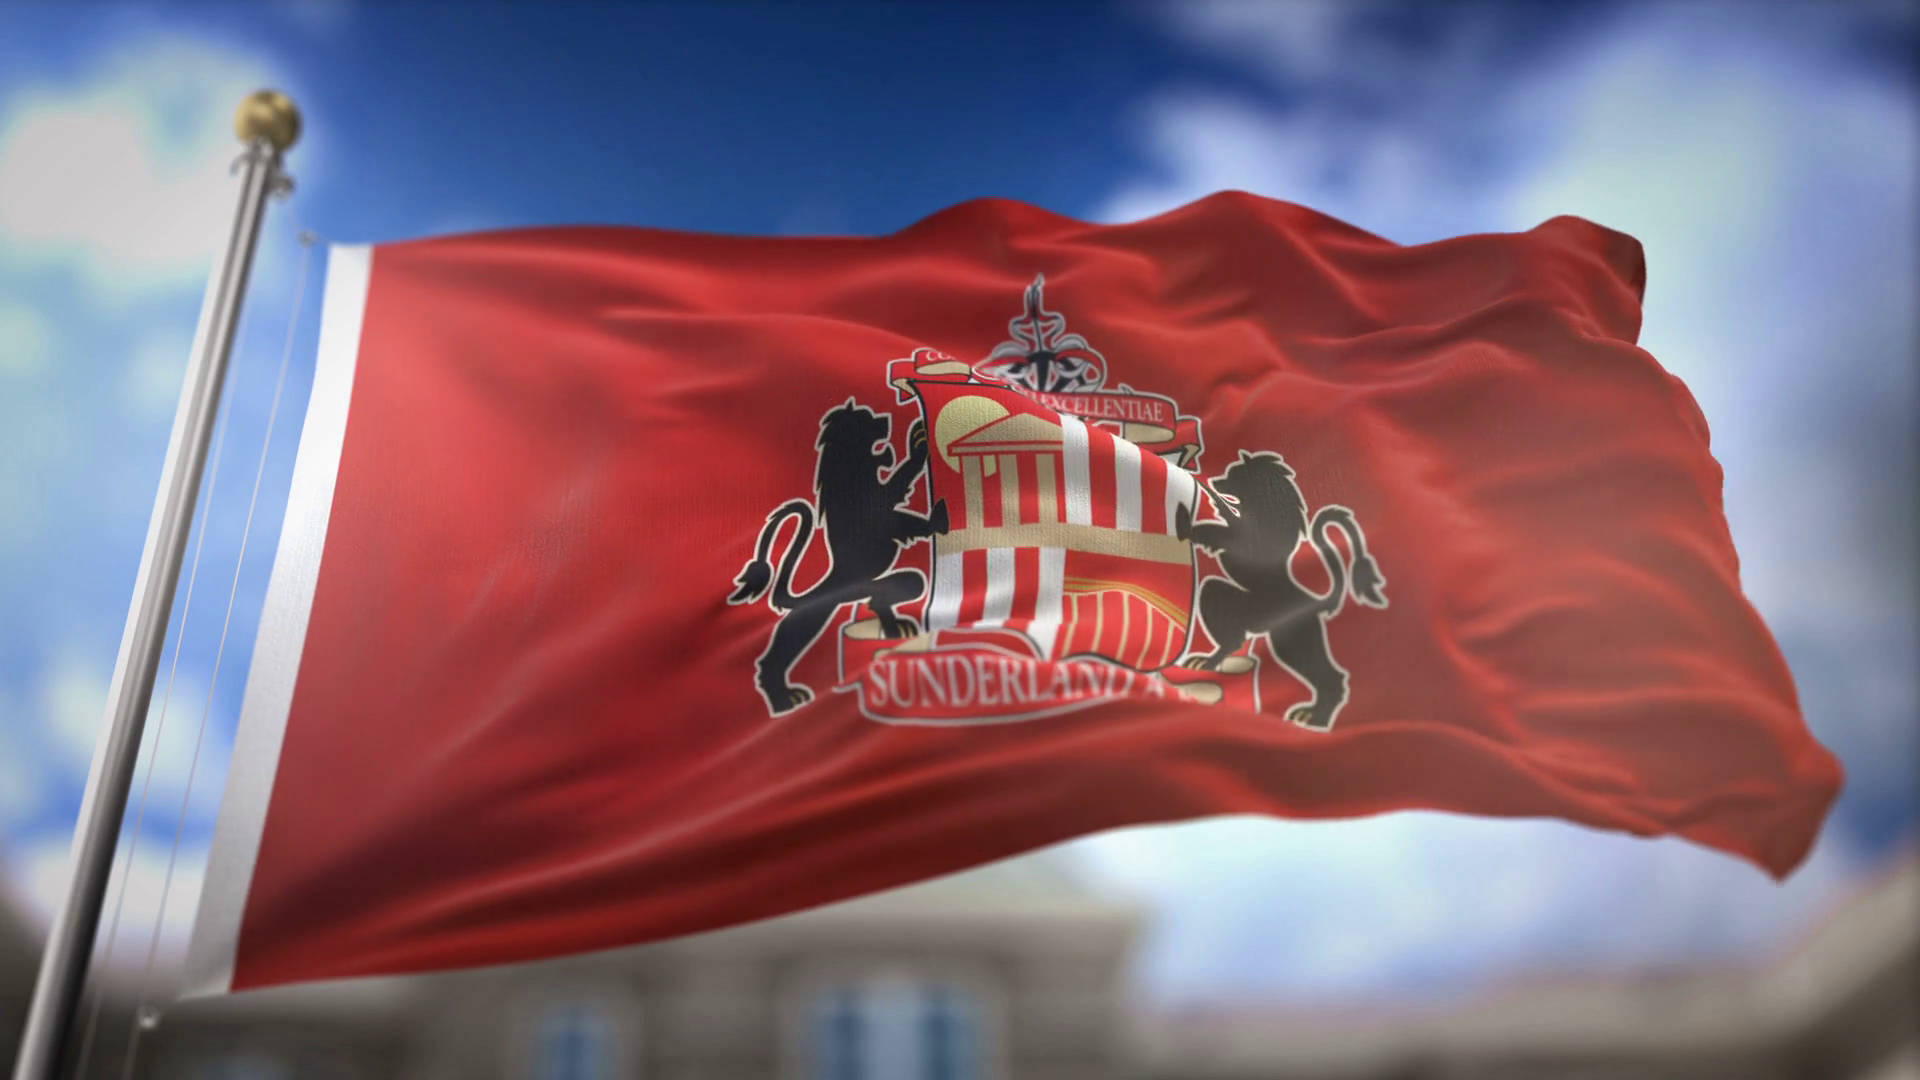 Sunderland A F C Wallpapers Hd Backgrounds 97 images in 1920x1080